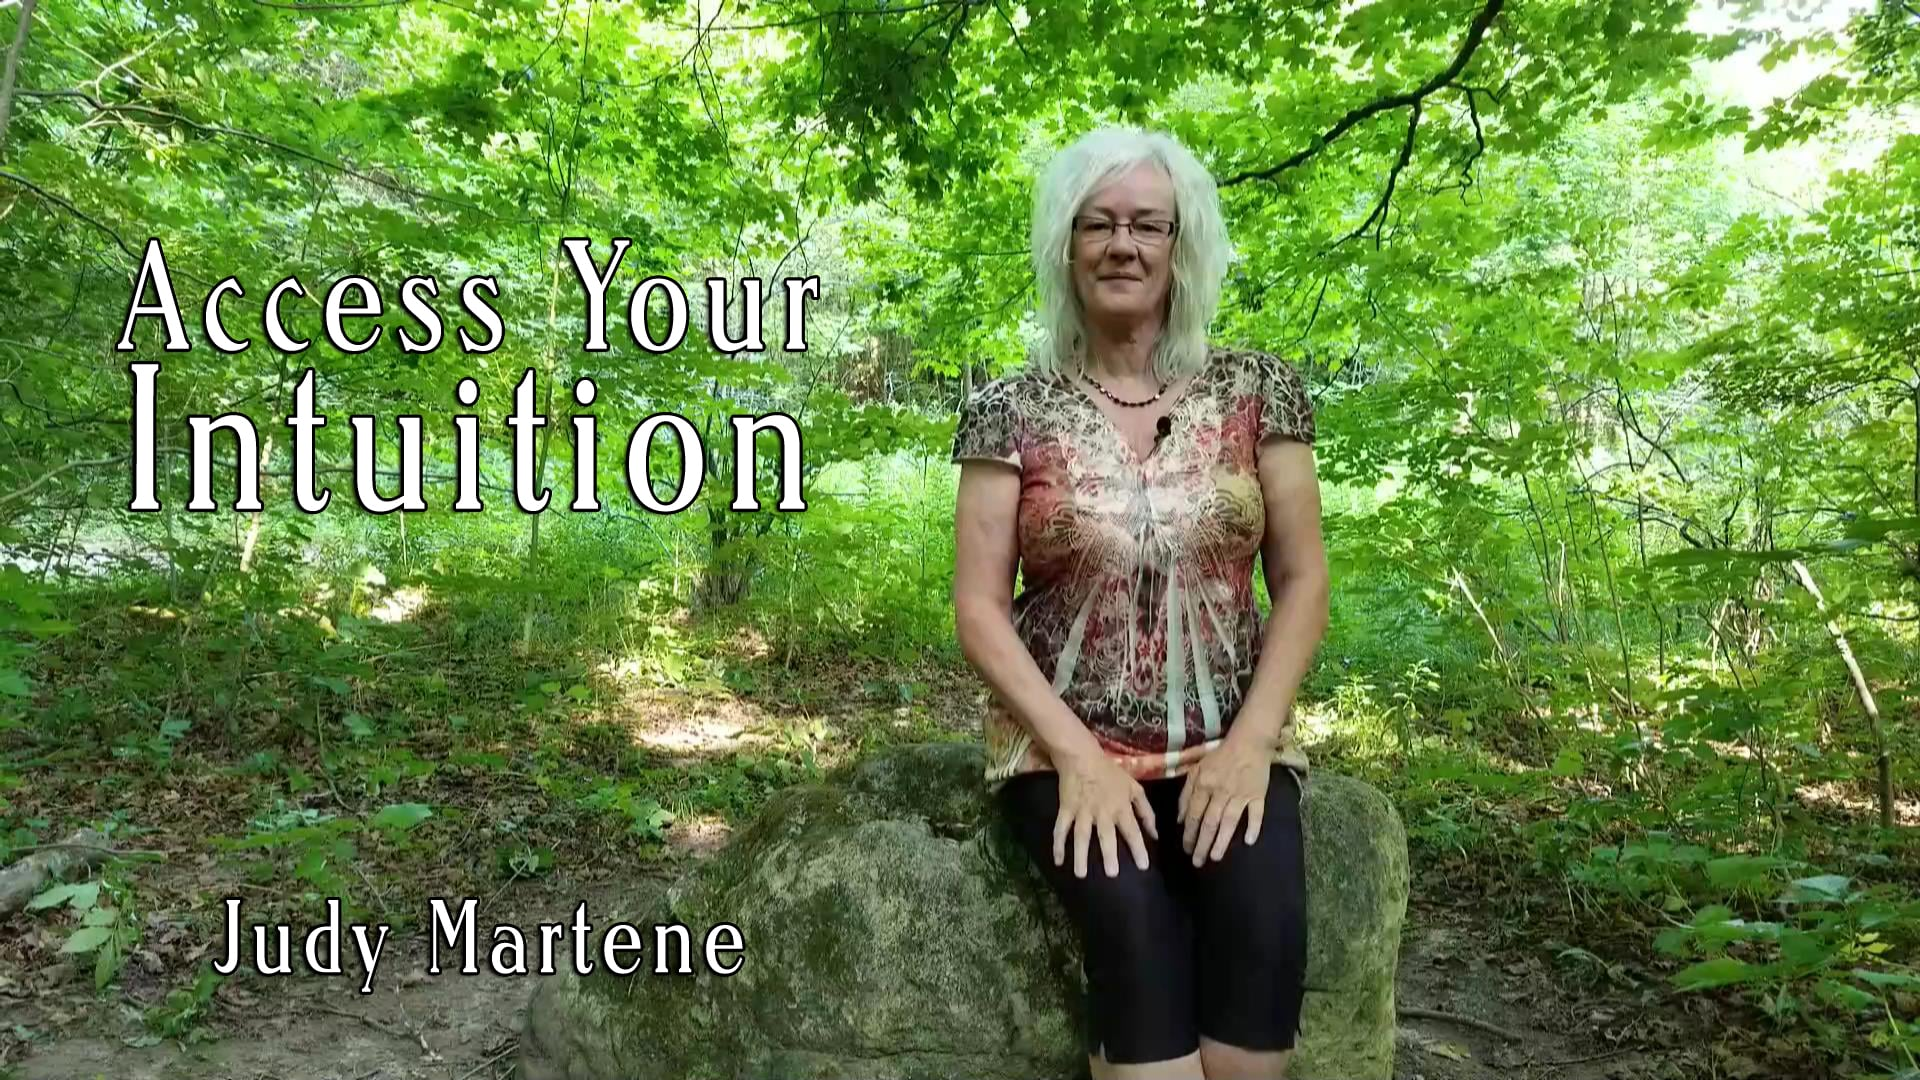 Access Your Intuition